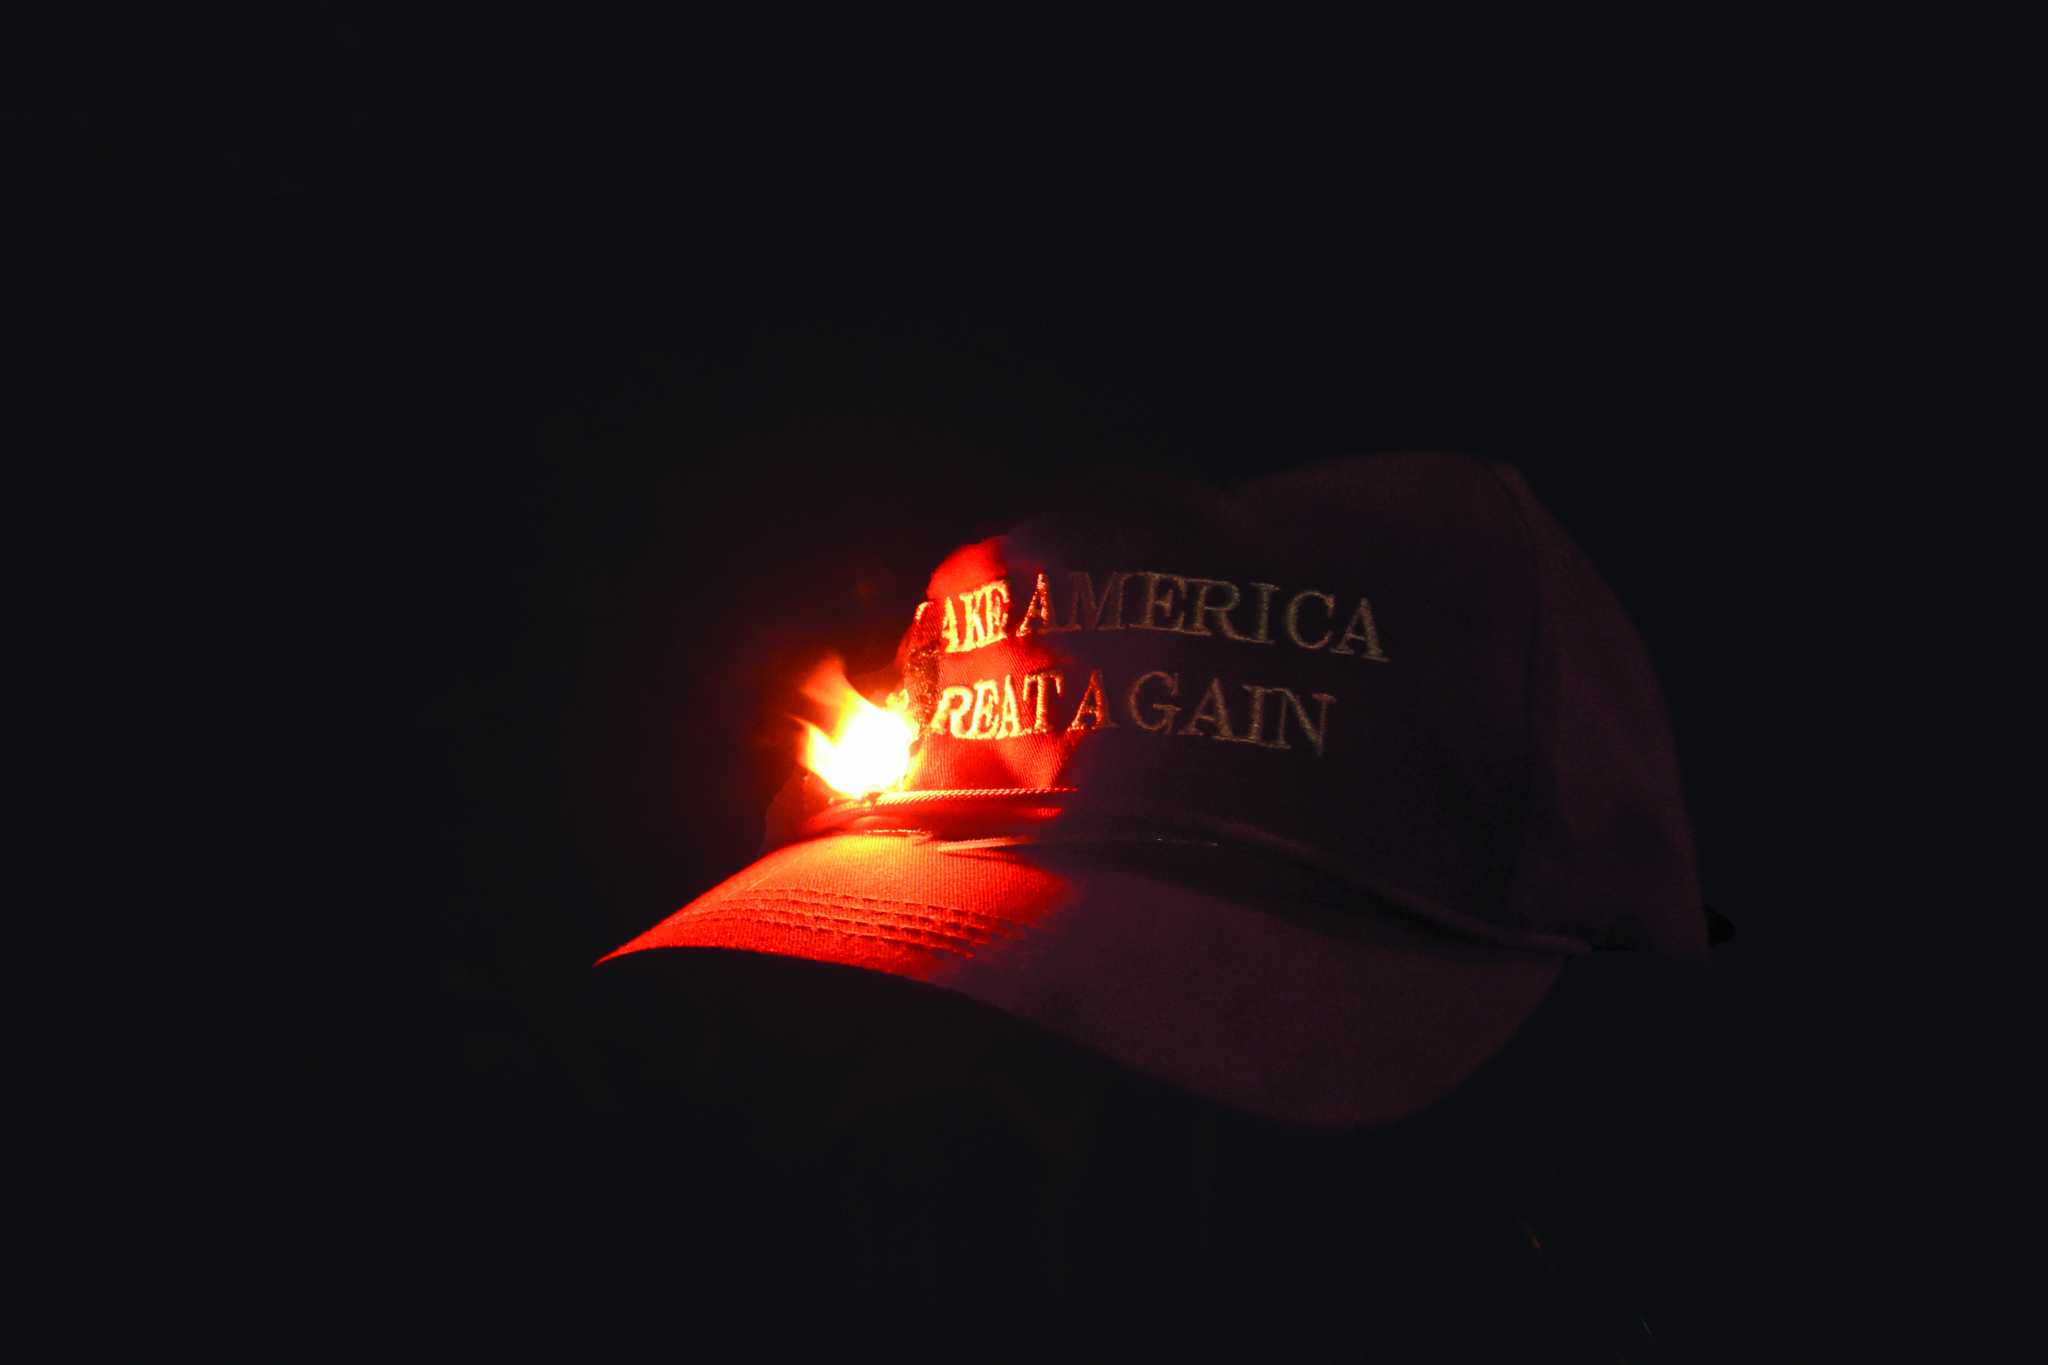 A Trump Supporter's hat is set on fire at a riot protesting controversial speaker Milo Yiannopoulous, who was scheduled to speak Feb. 1, 2017. The event was canceled due to violent riots (Tate Drunker/Xpress).